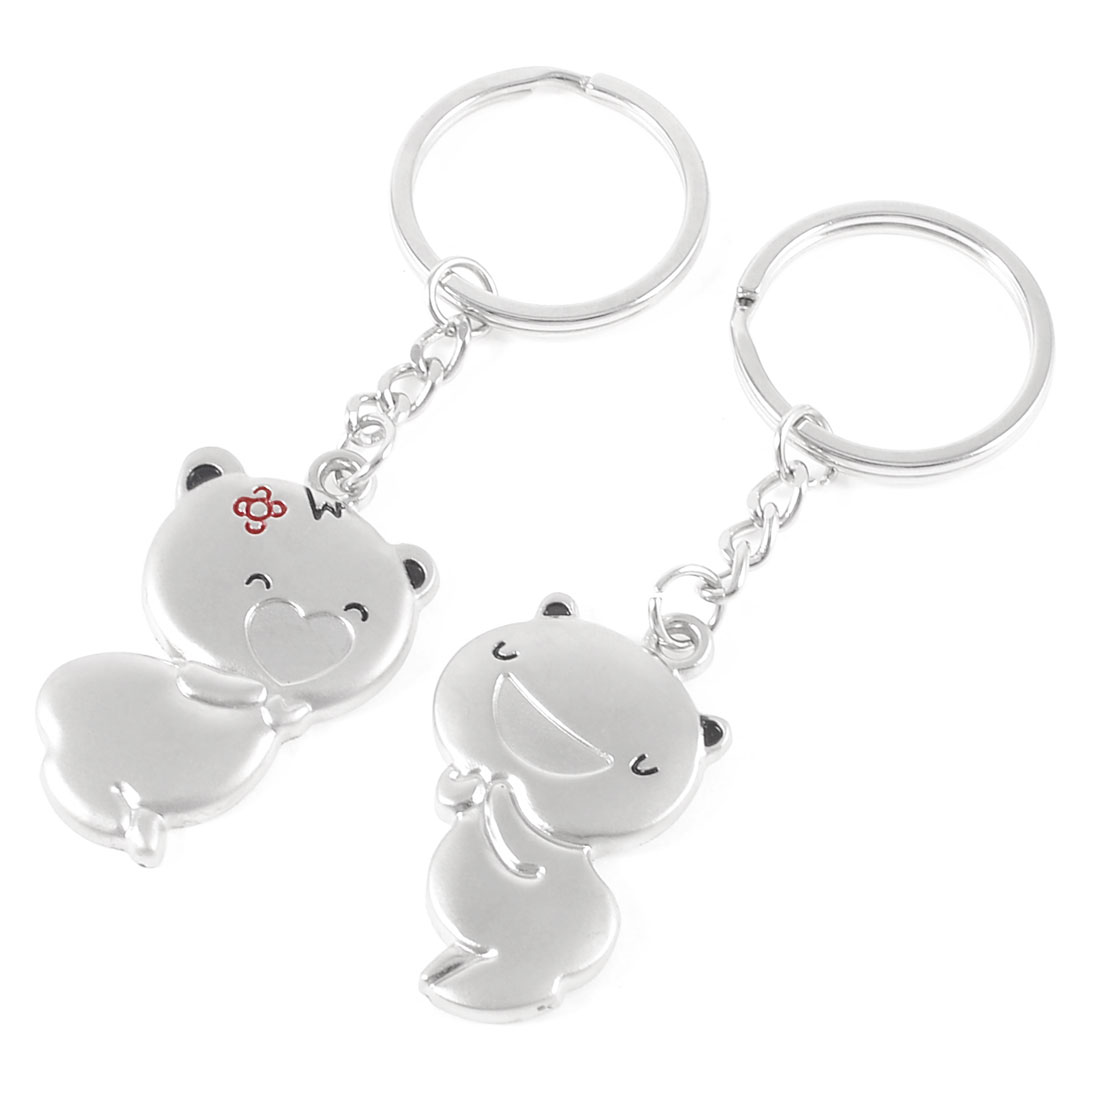 2 Pcs Metal Cartoon Pigs Pendant Keychain Silver Tone for Lovers Couple